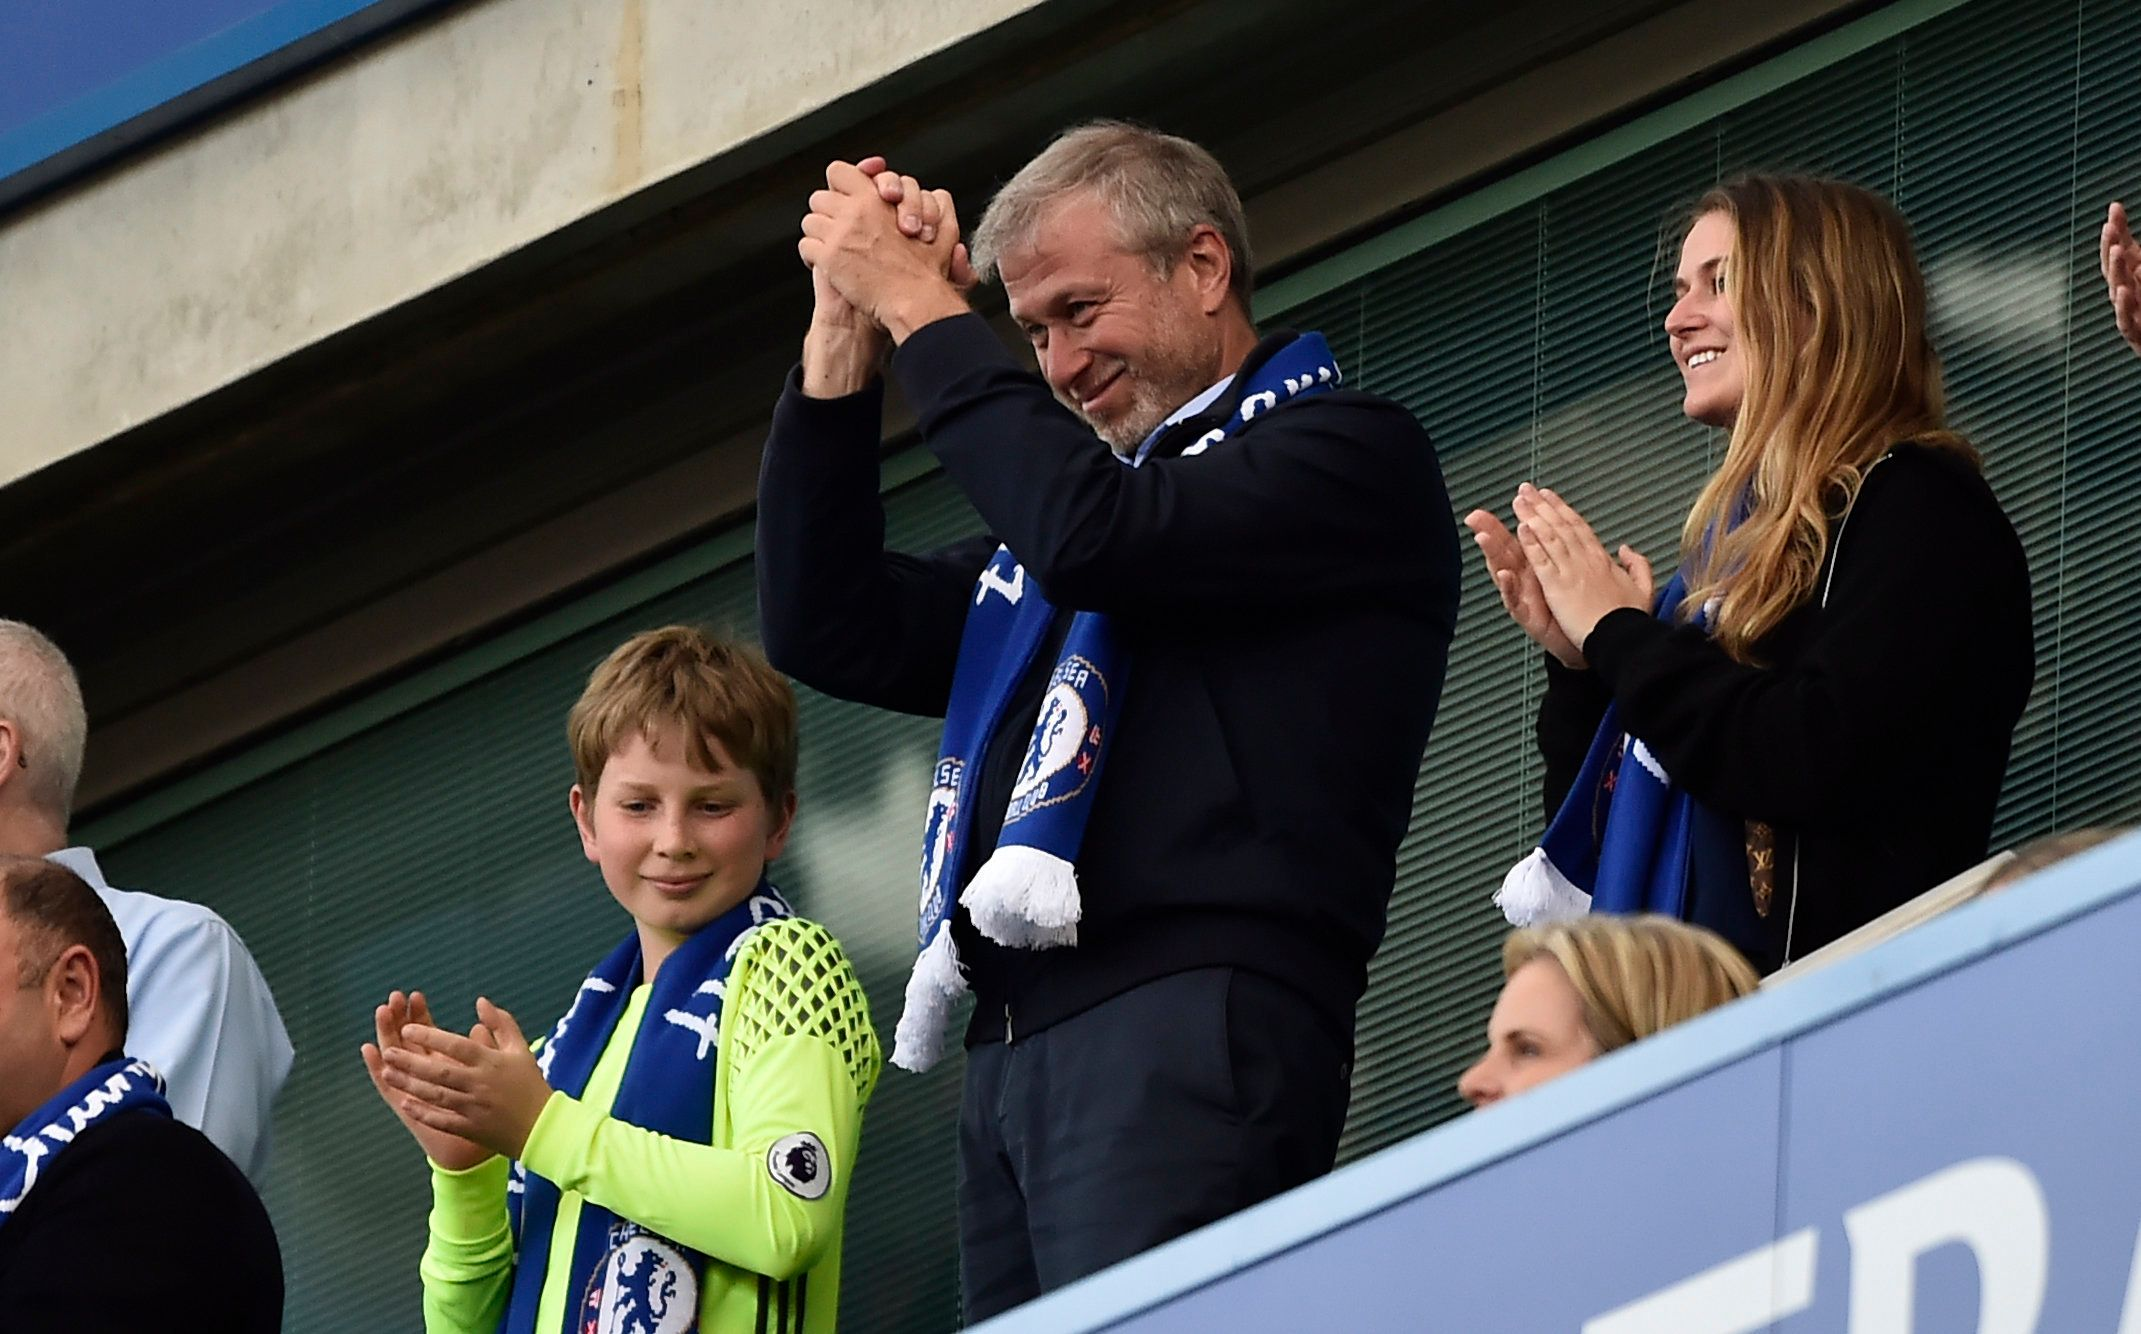 Roman Abramovich can enter United Kingdom after 'getting Israel passport'